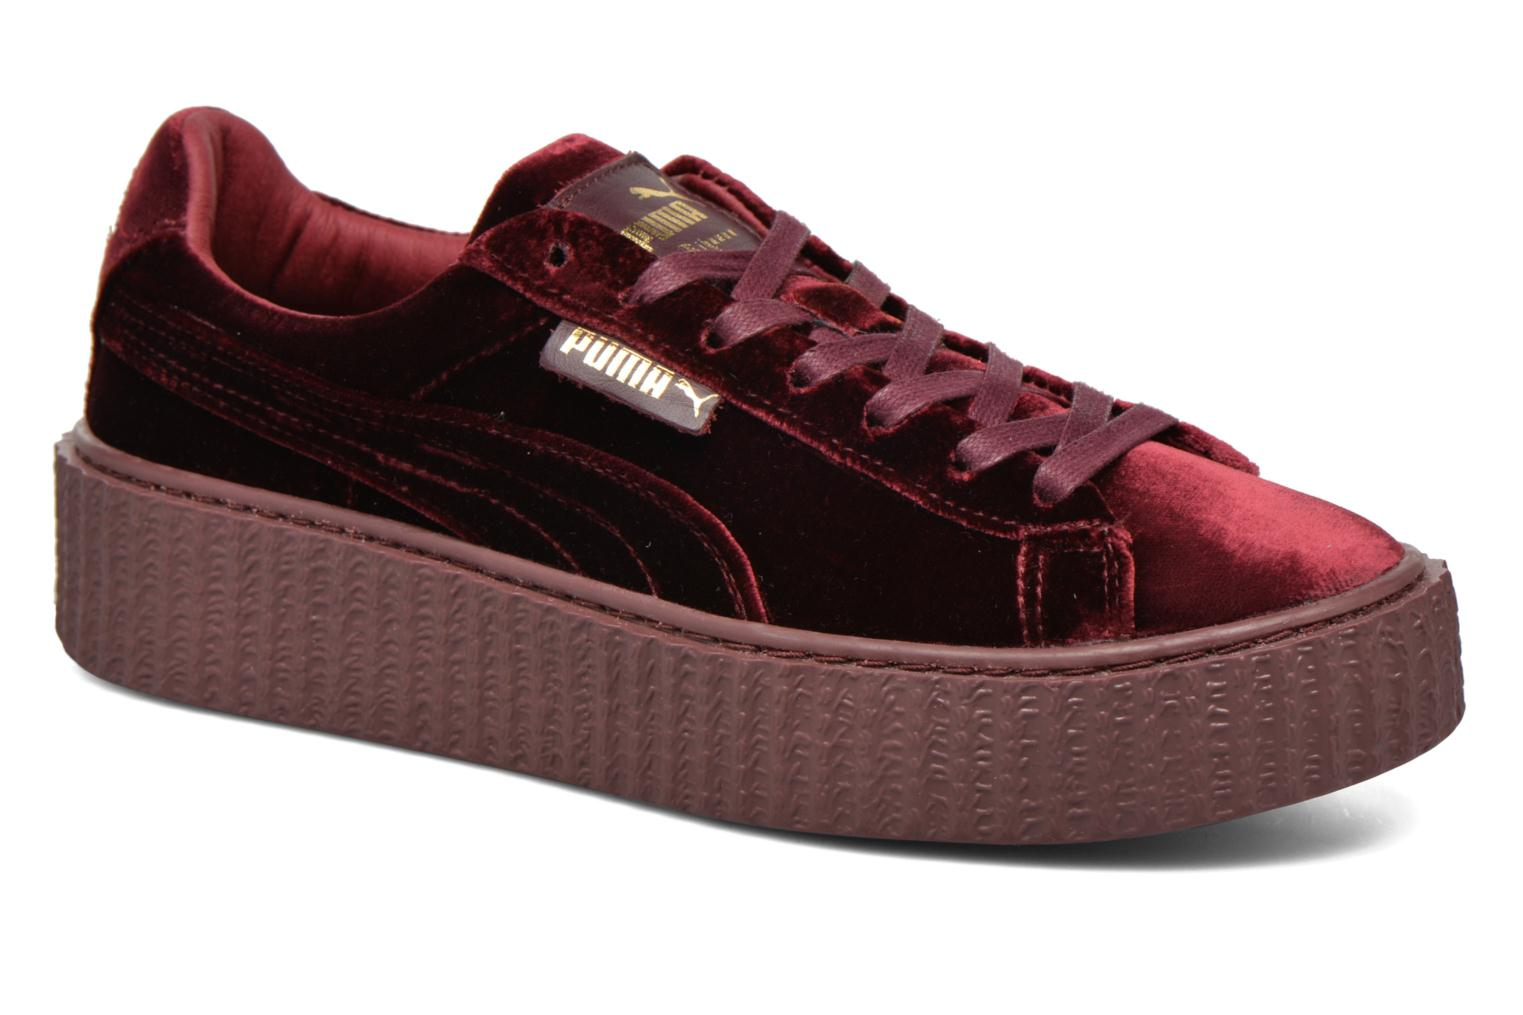 puma creepers bordeaux